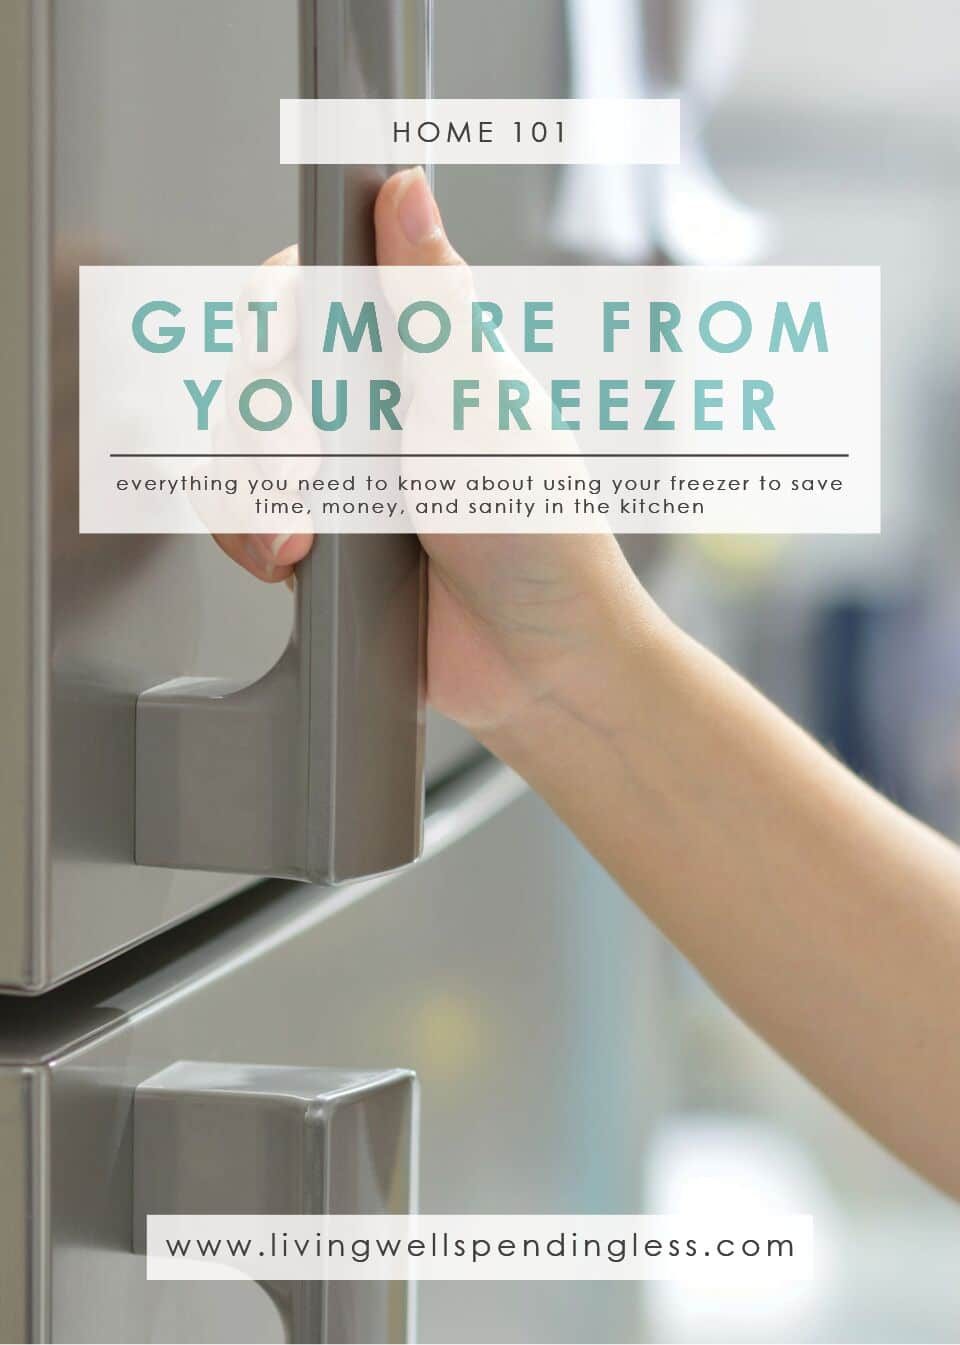 Improve your freezer space with these tips